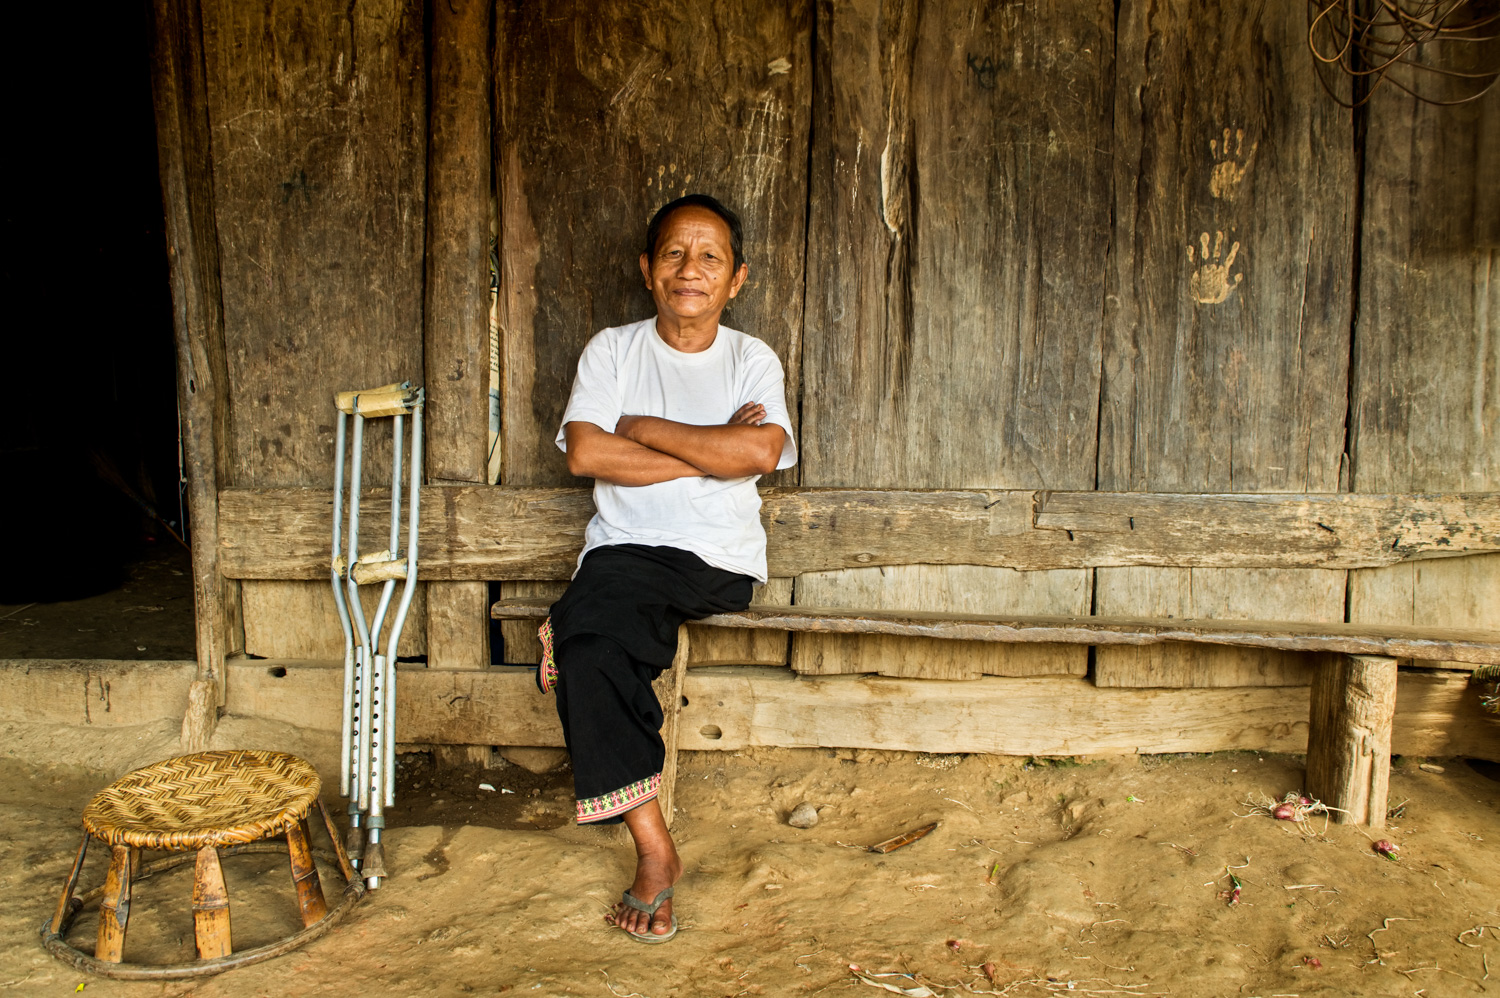 Hmong Amputee sitting outside his home